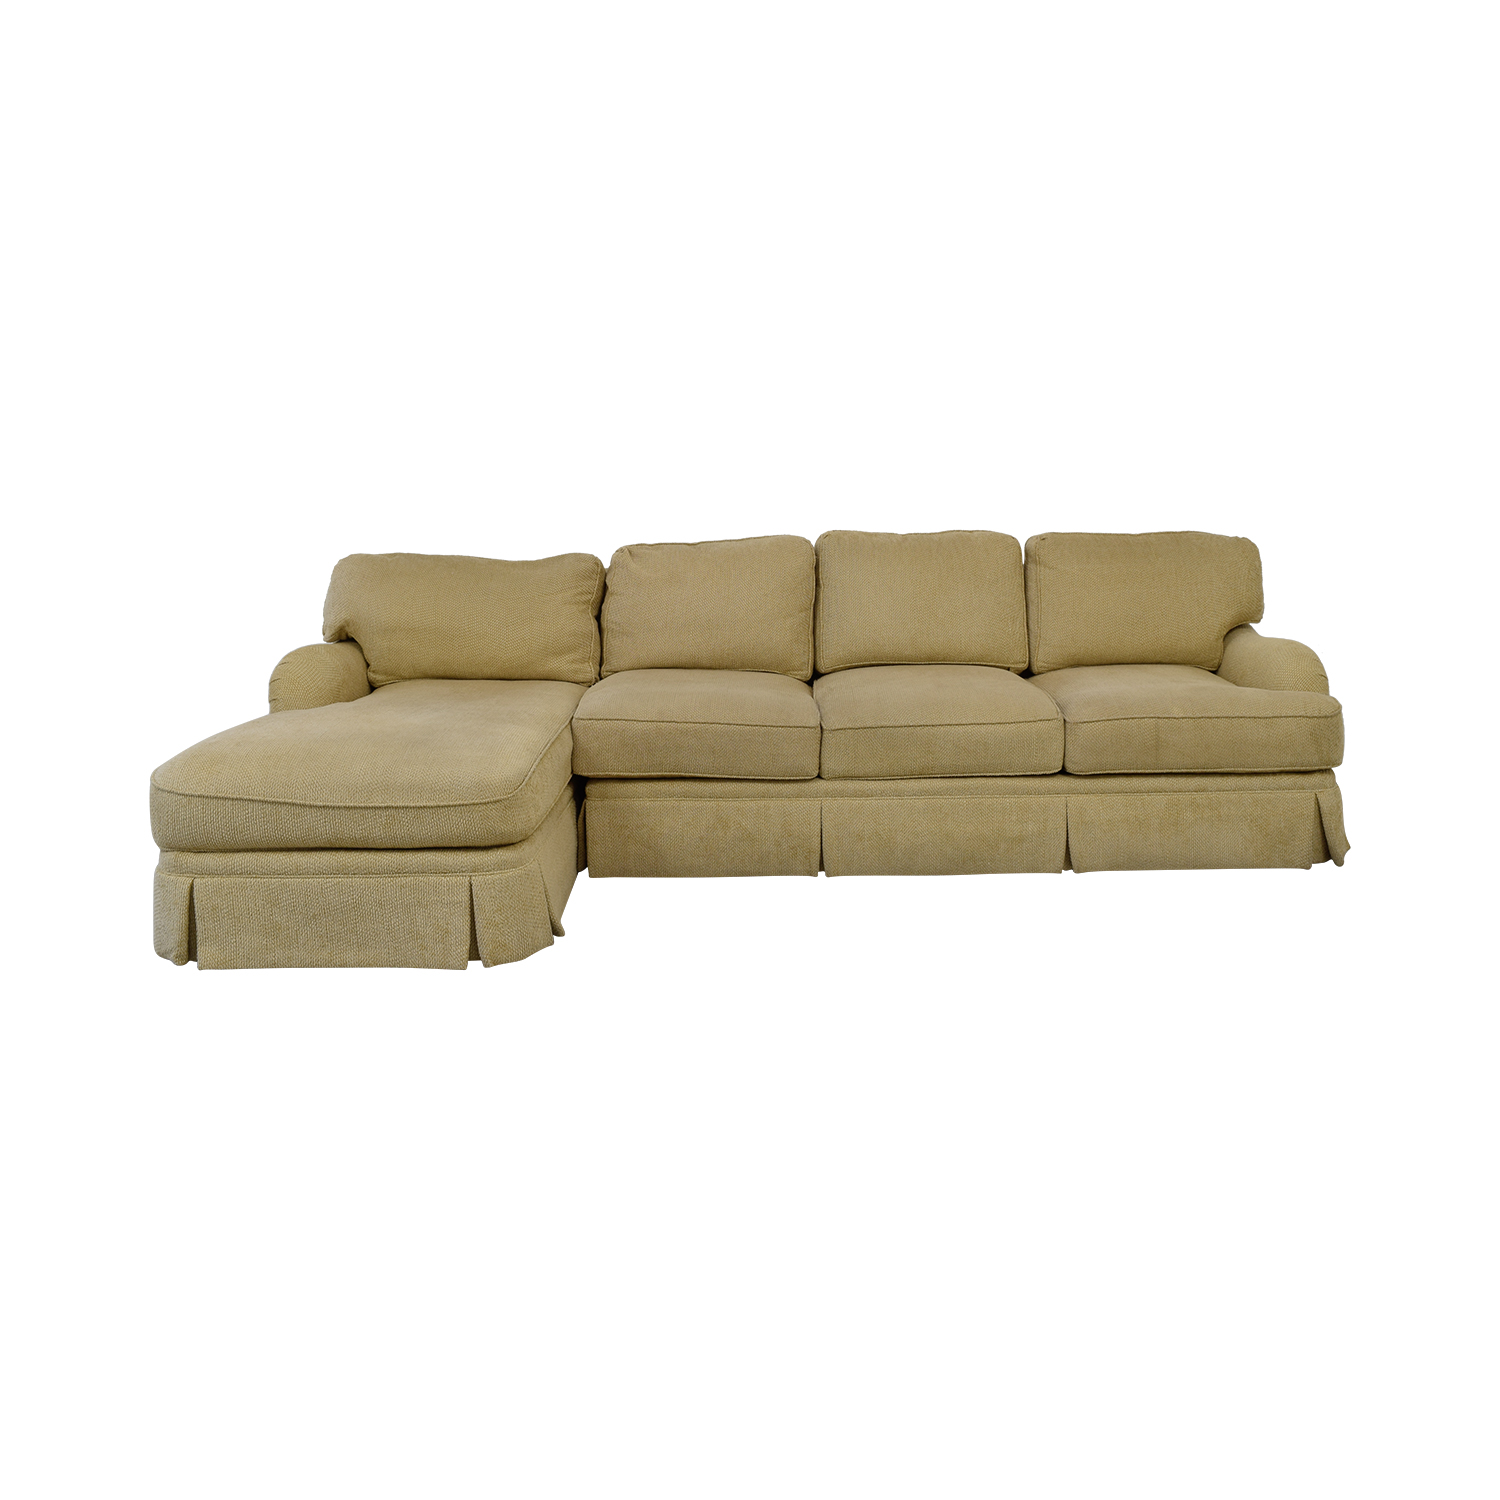 86% OFF - CR Laine CR Laine Beige Skirted Chaise Sectional / Sofas